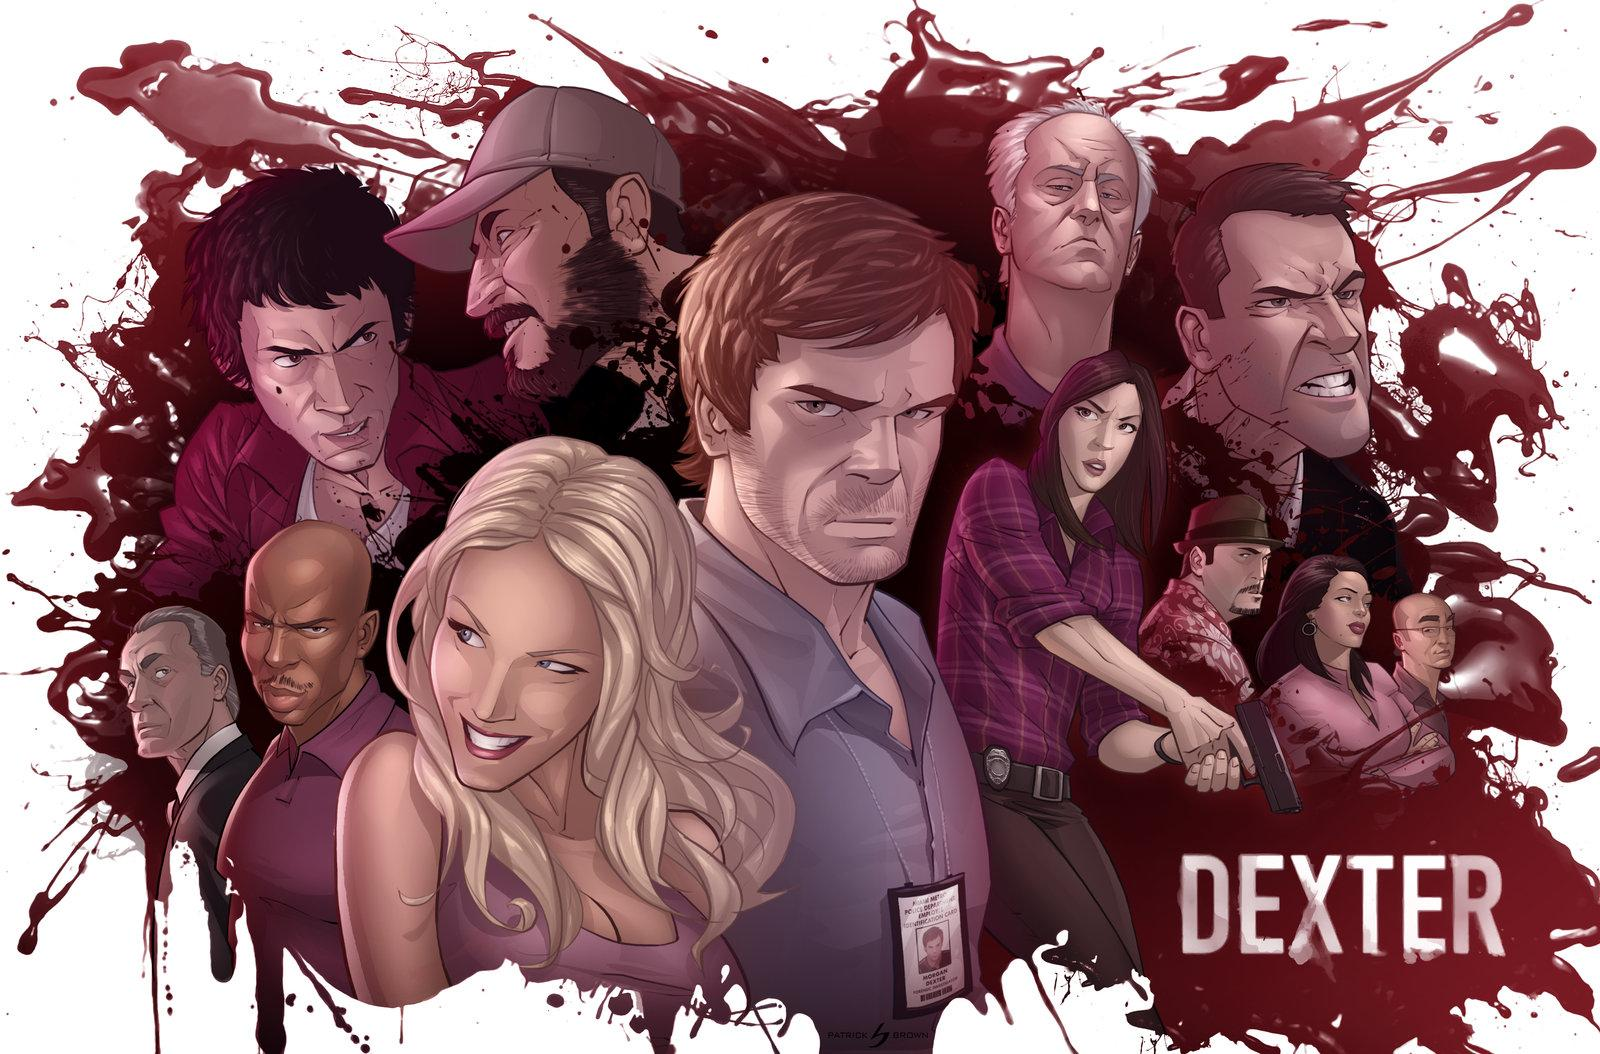 Dexter: The Dark Defender by *patrickbrown